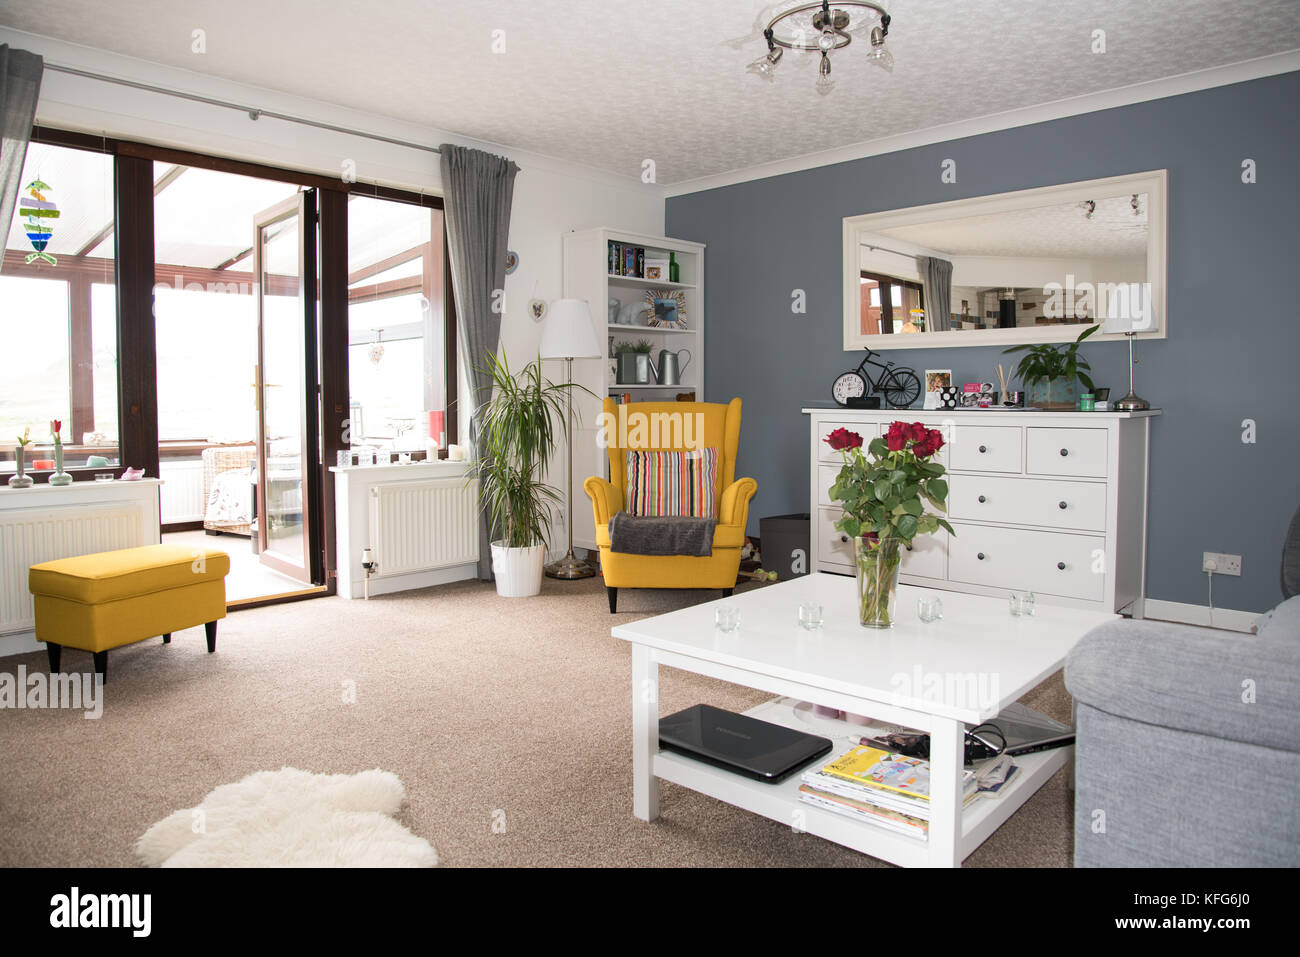 Buy furniture stock photos buy furniture stock images for Bright wallpaper for living room